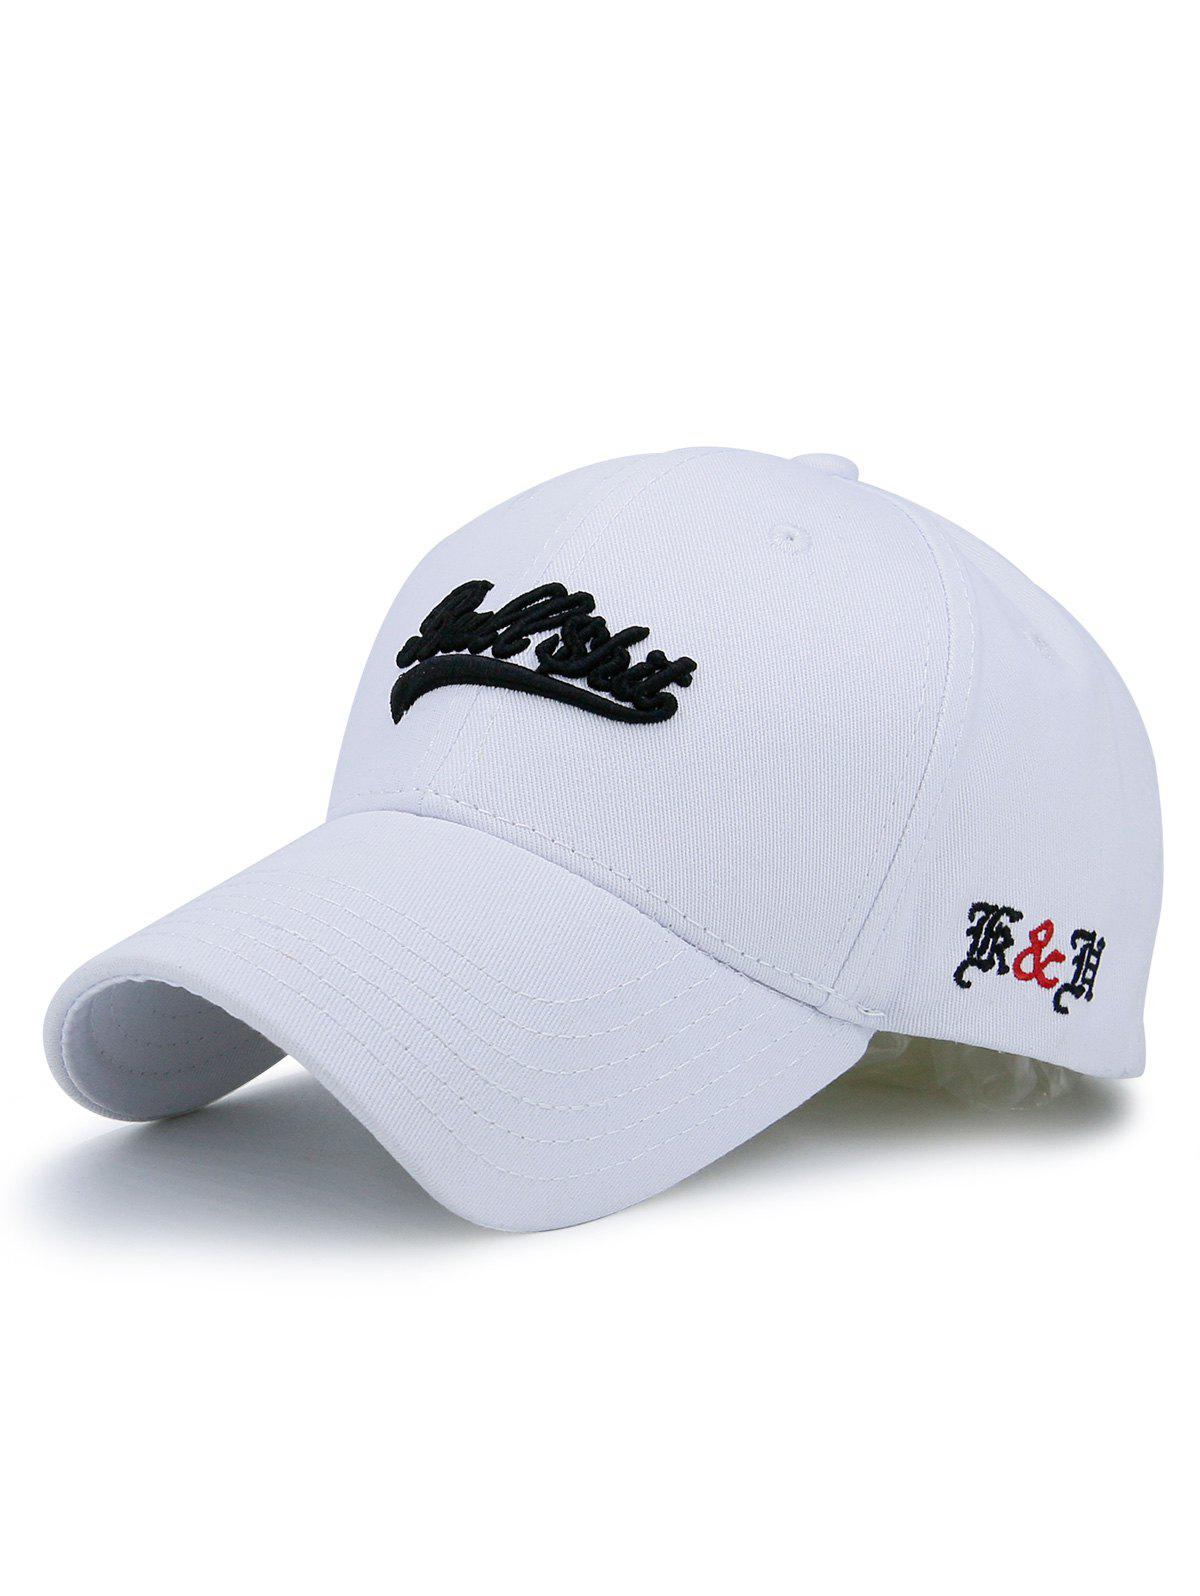 Baseball Cap with Letters Bullshit Embroidered - WHITE